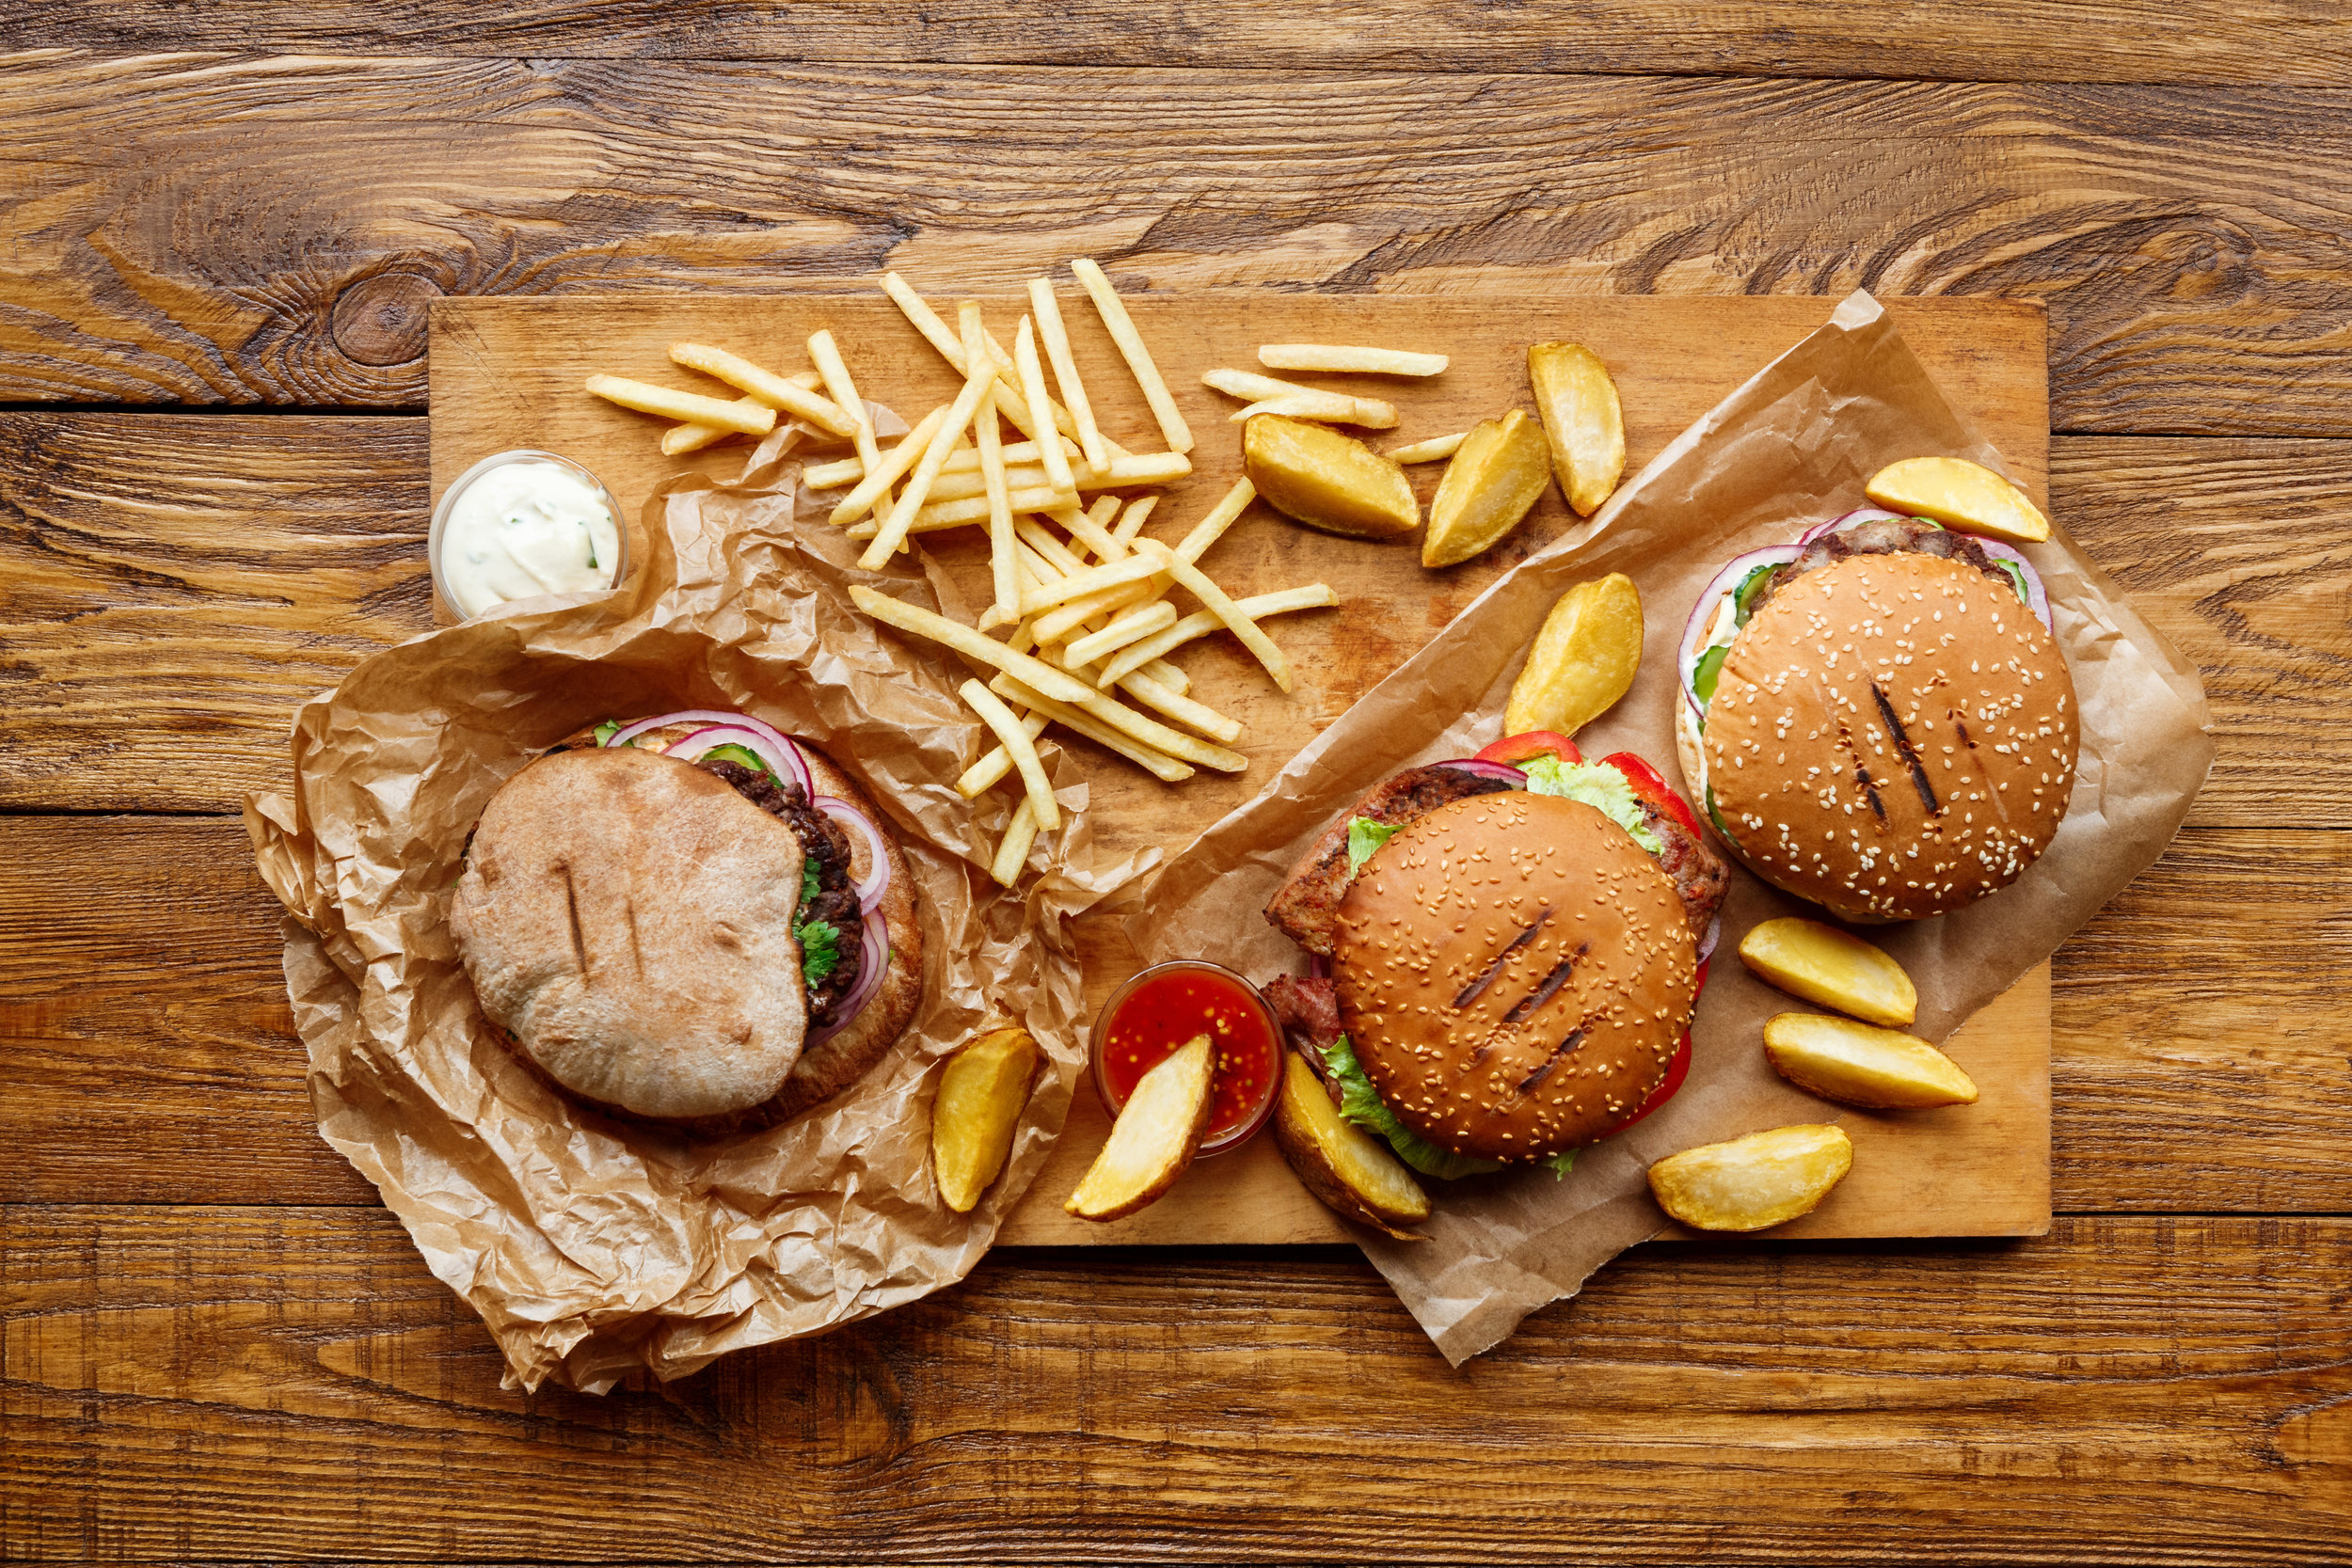 Beware of burgers: one burger can have over 1,000 calories